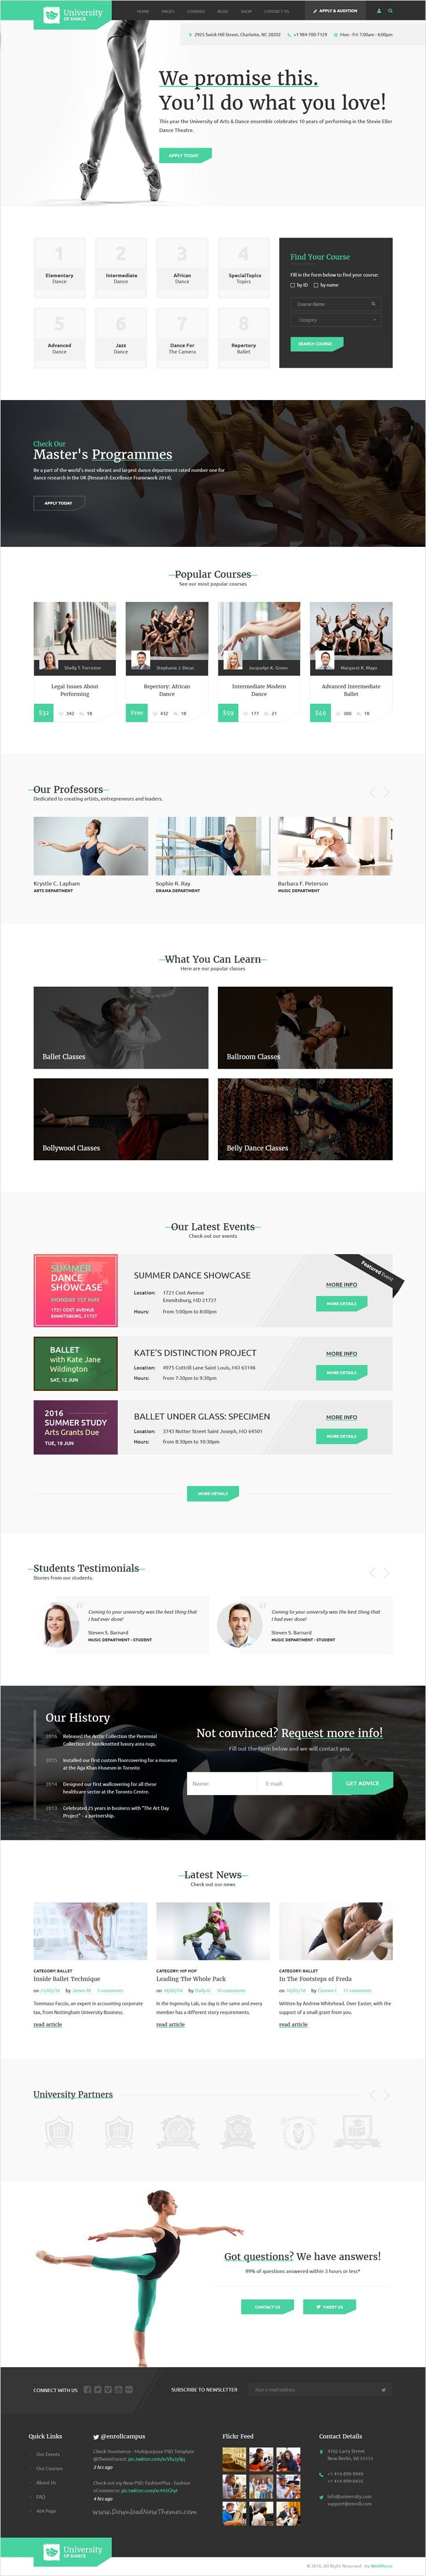 Enroll University is a professional learning management #bootstrap template for #dance #school, college or education website with 4 stunning homepage layouts download now➩ https://themeforest.net/item/enroll-university-college-school-responsive-education-template/17343044?ref=Datasata